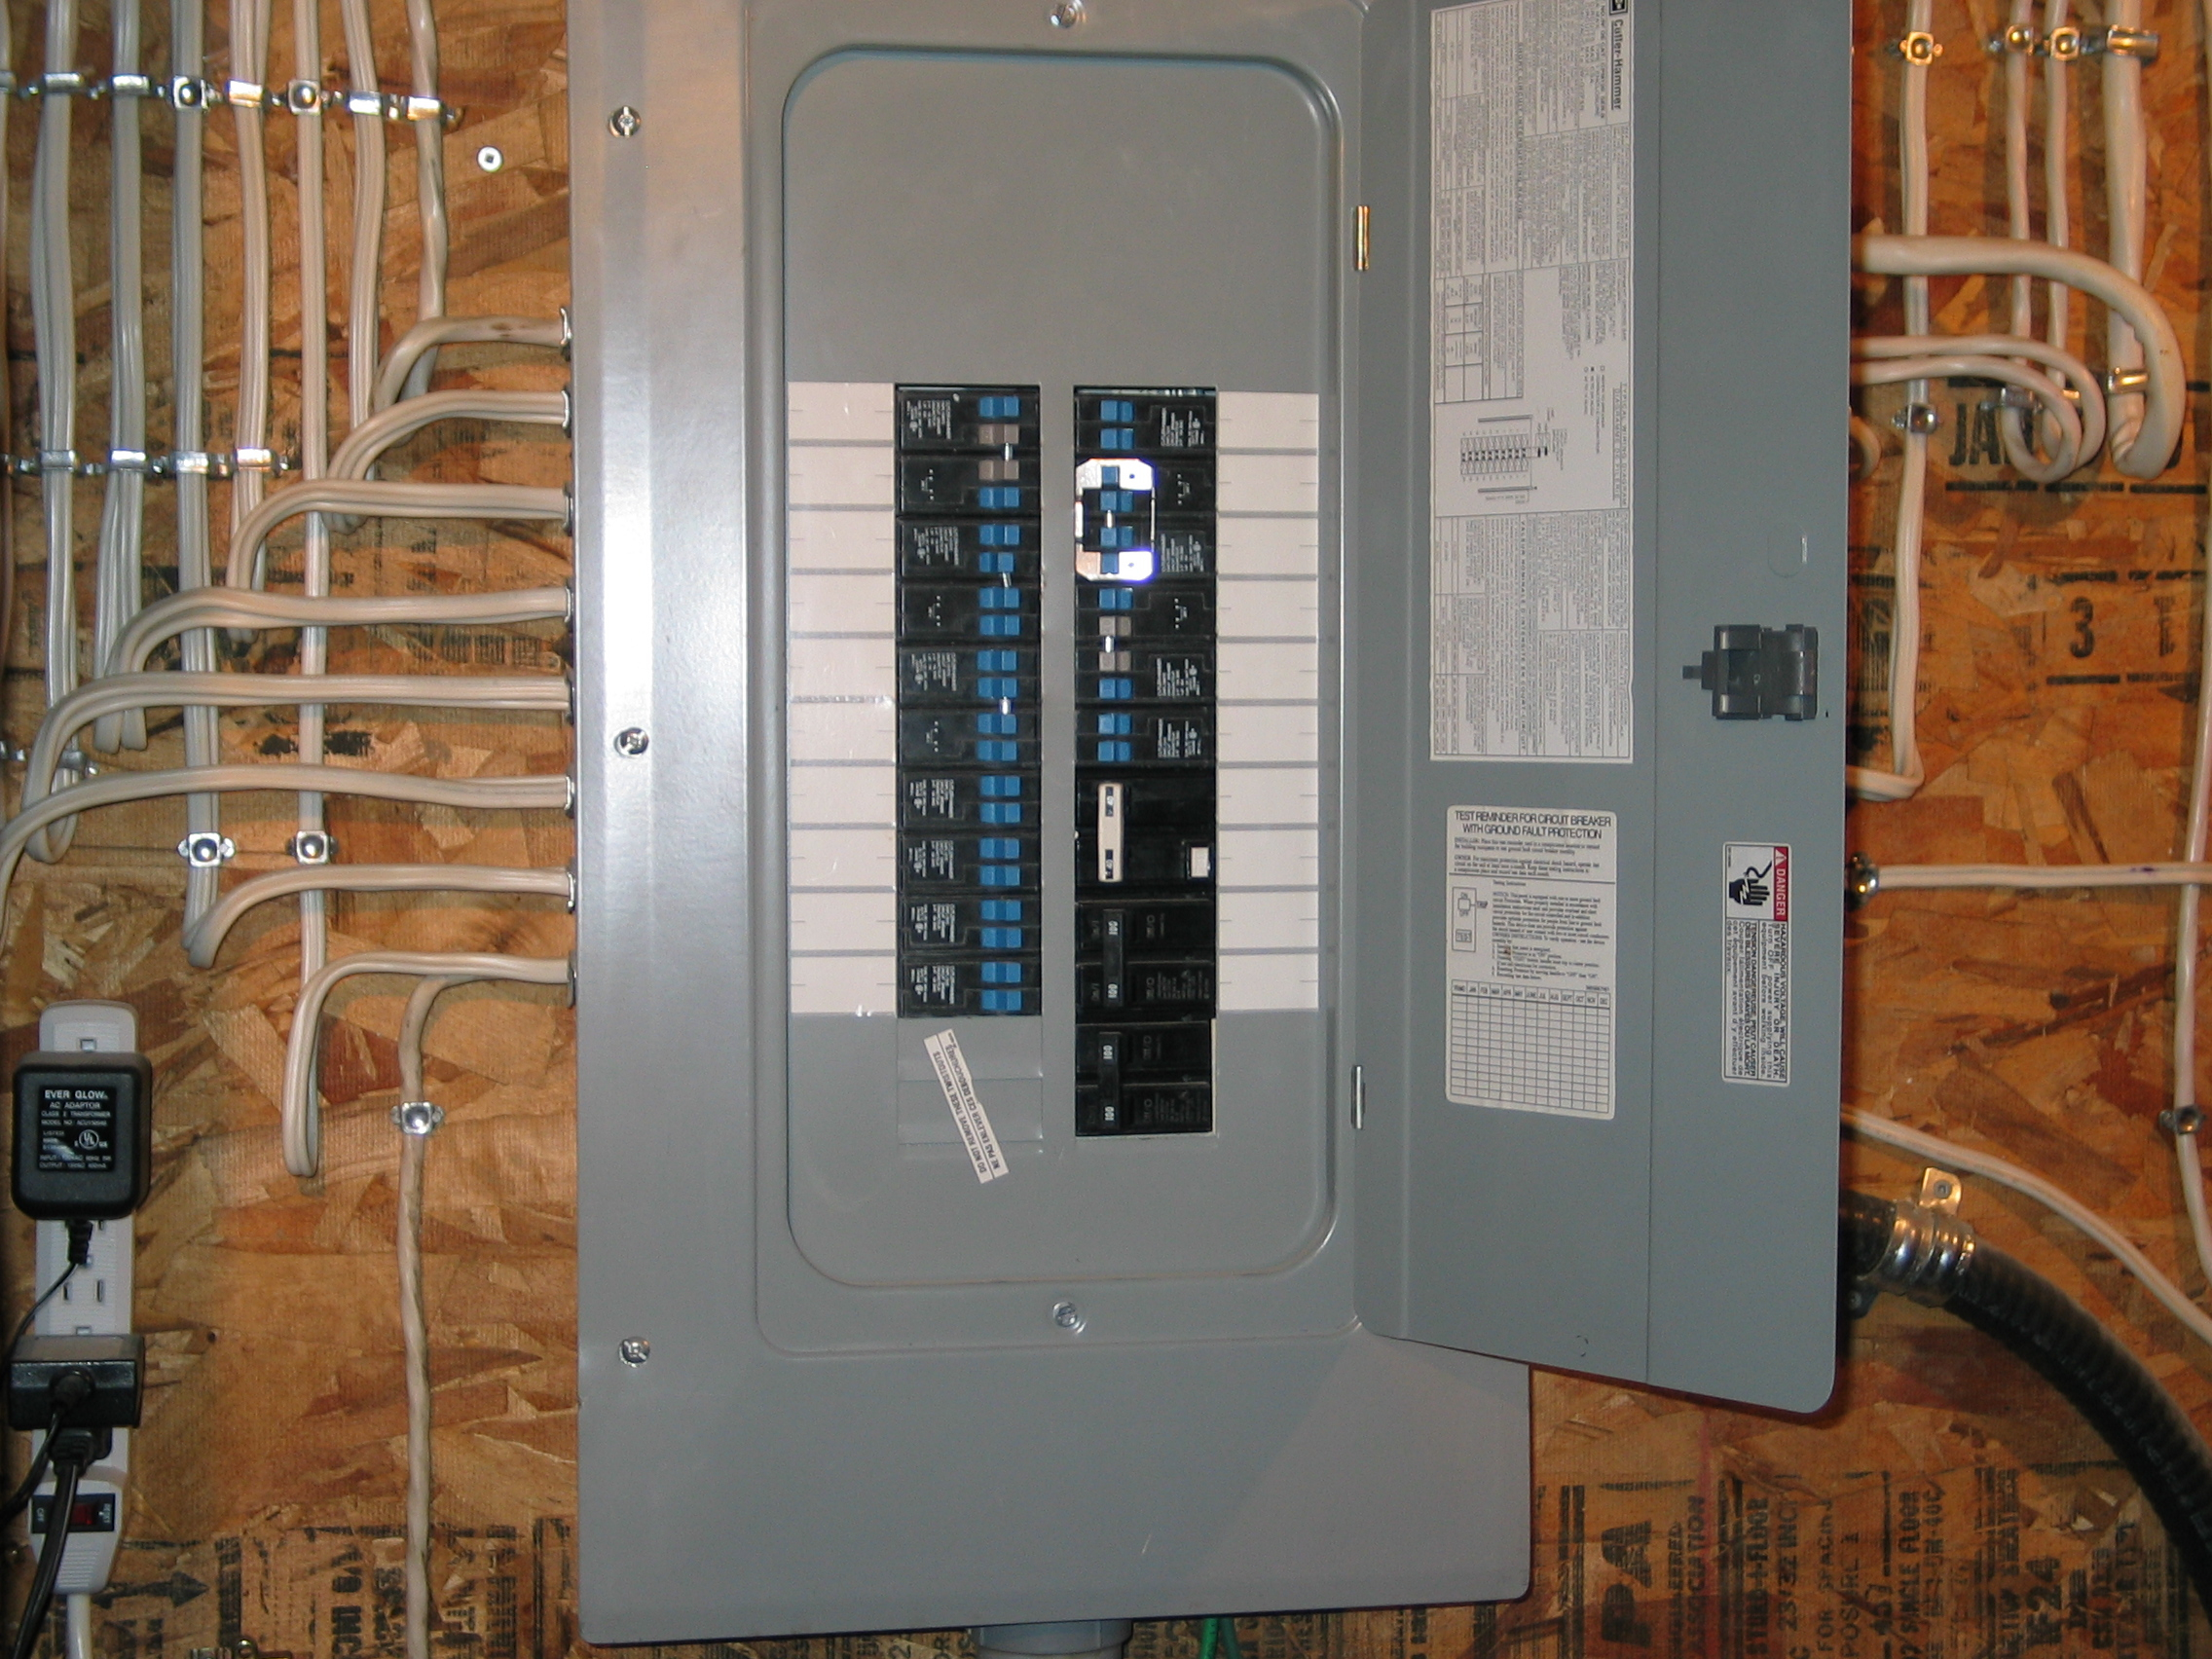 220-240 Wiring Diagram Instructions - Dannychesnut - Sub Panel Wiring Diagram